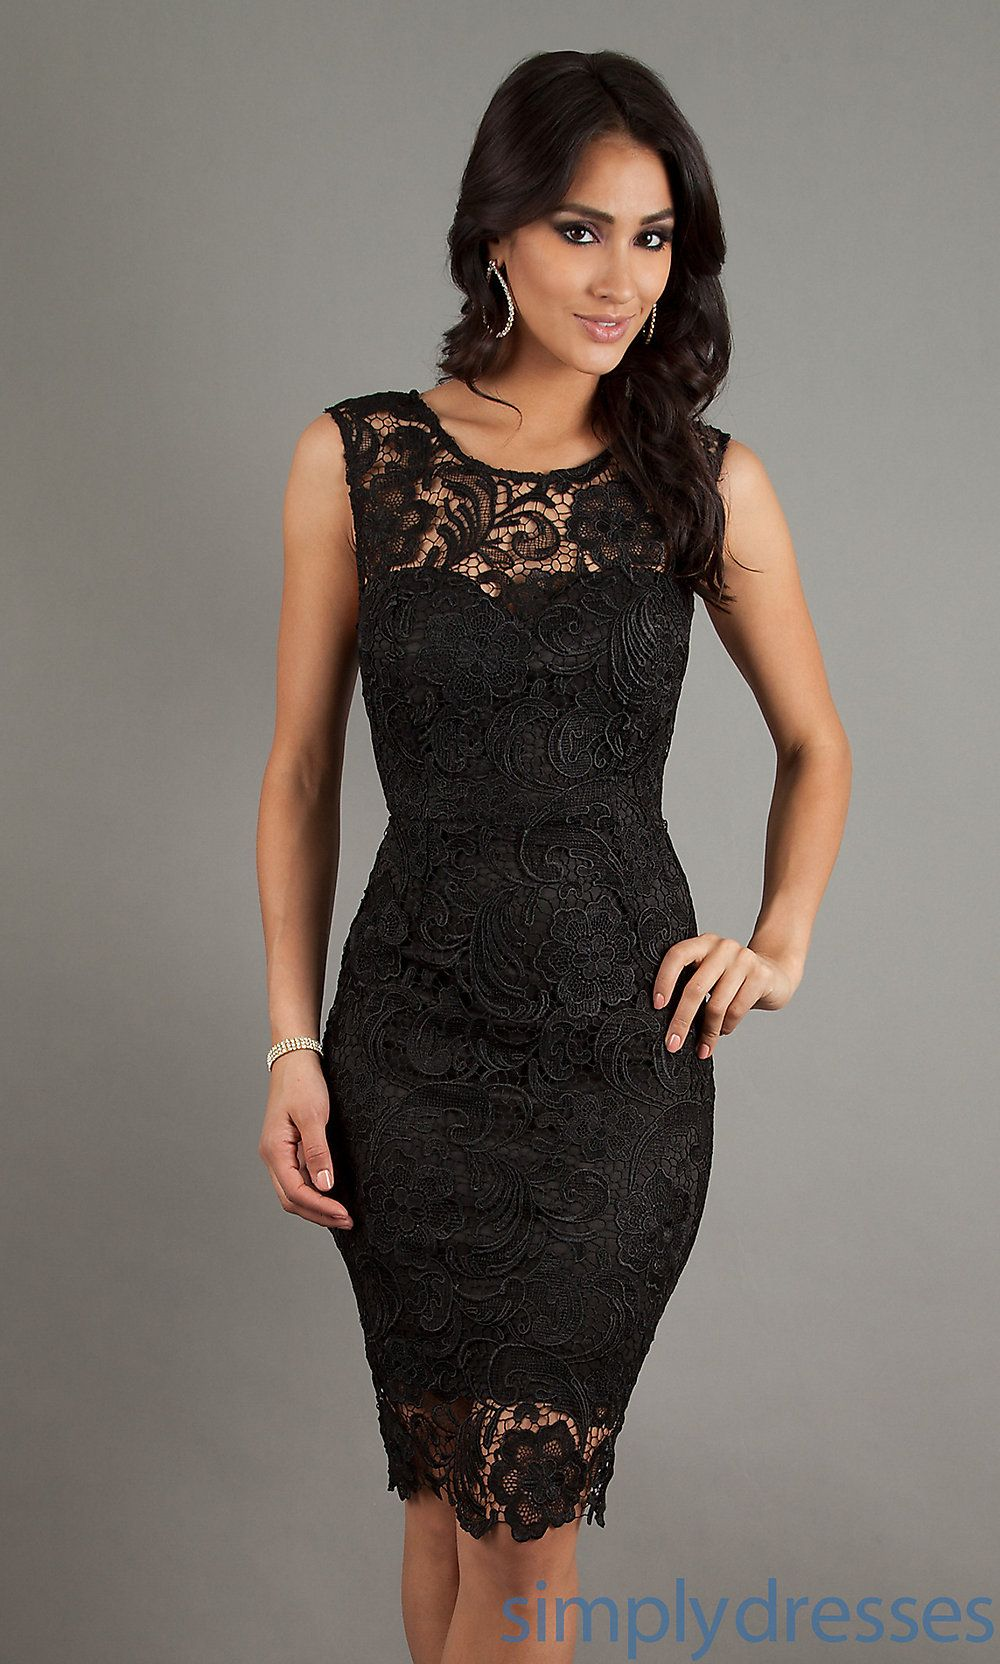 Sleeveless Lace Cocktail Dress 56c36049e